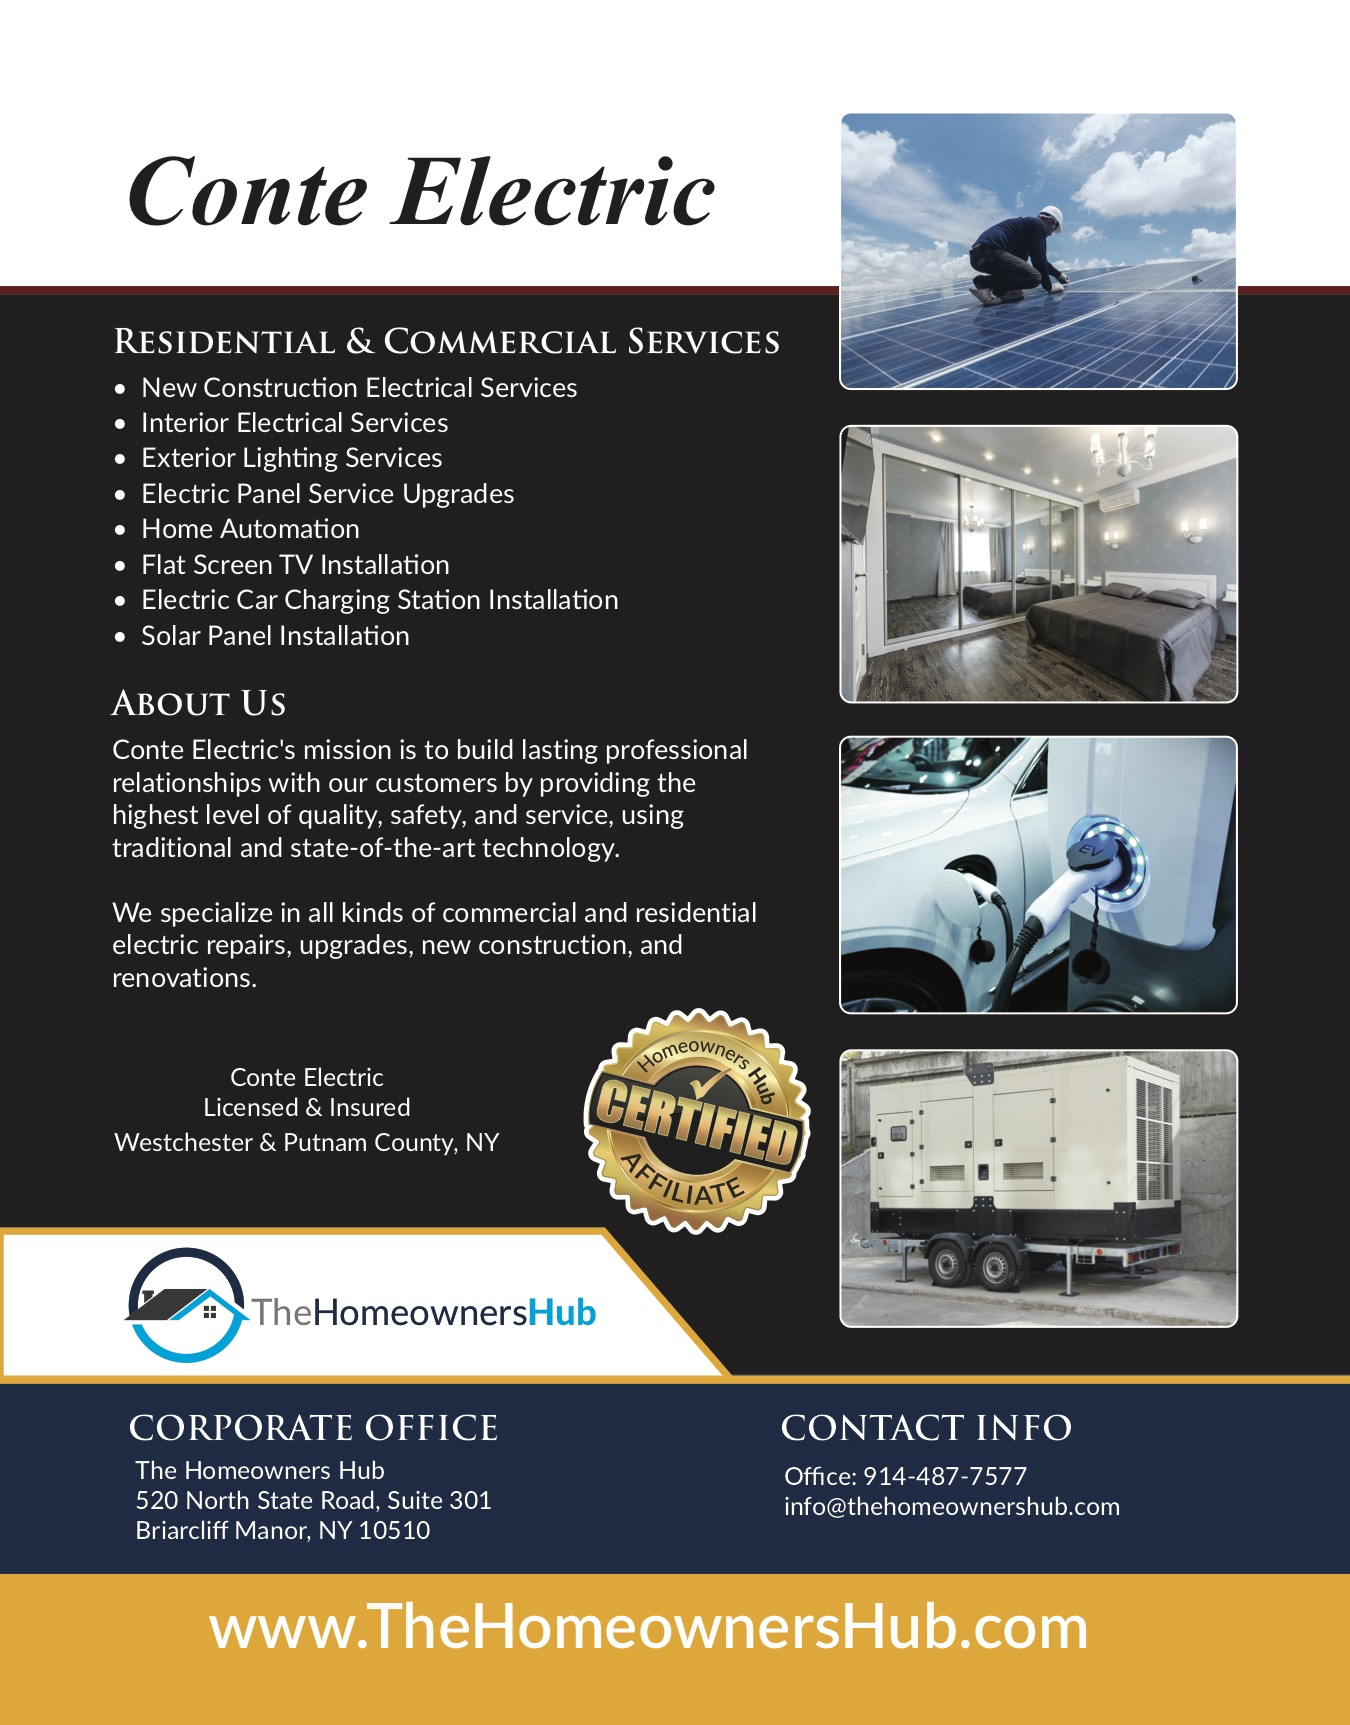 Conte Electric Services